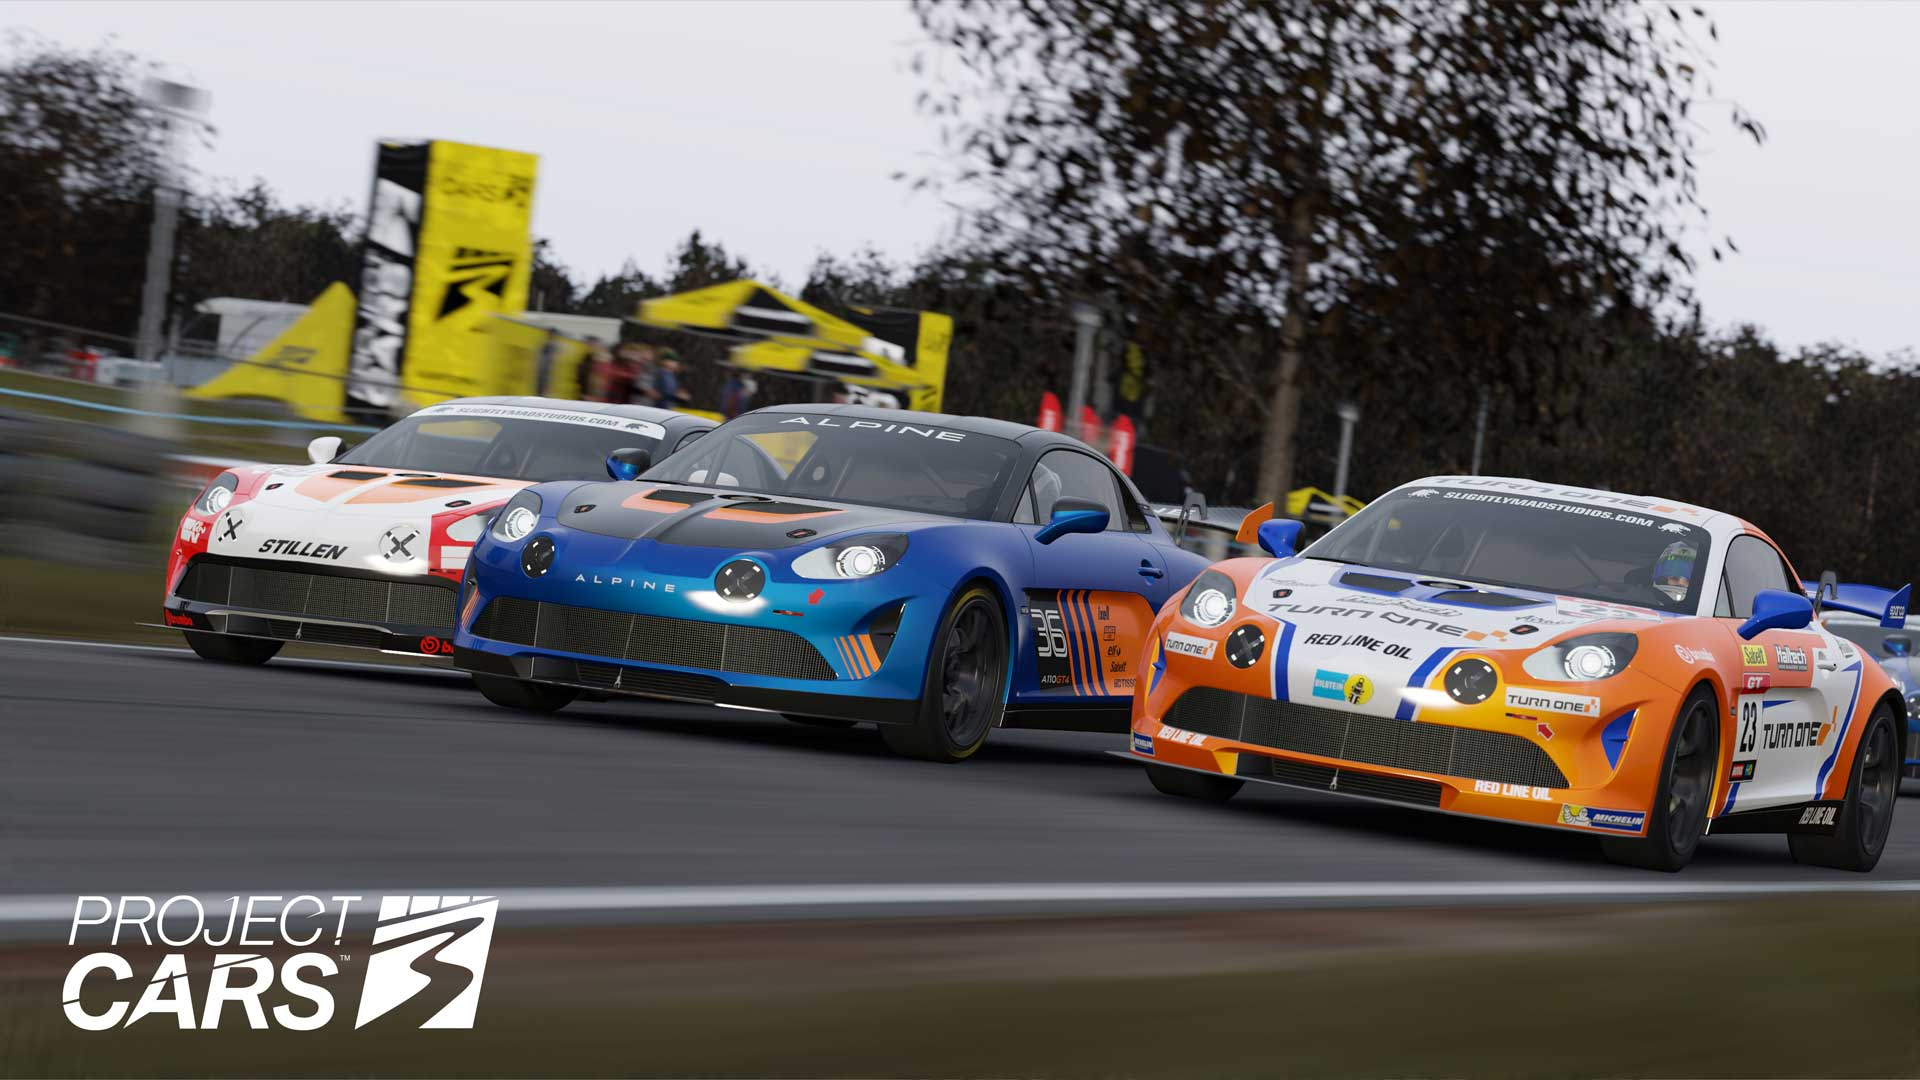 Why I'm looking forward to Project Cars 3